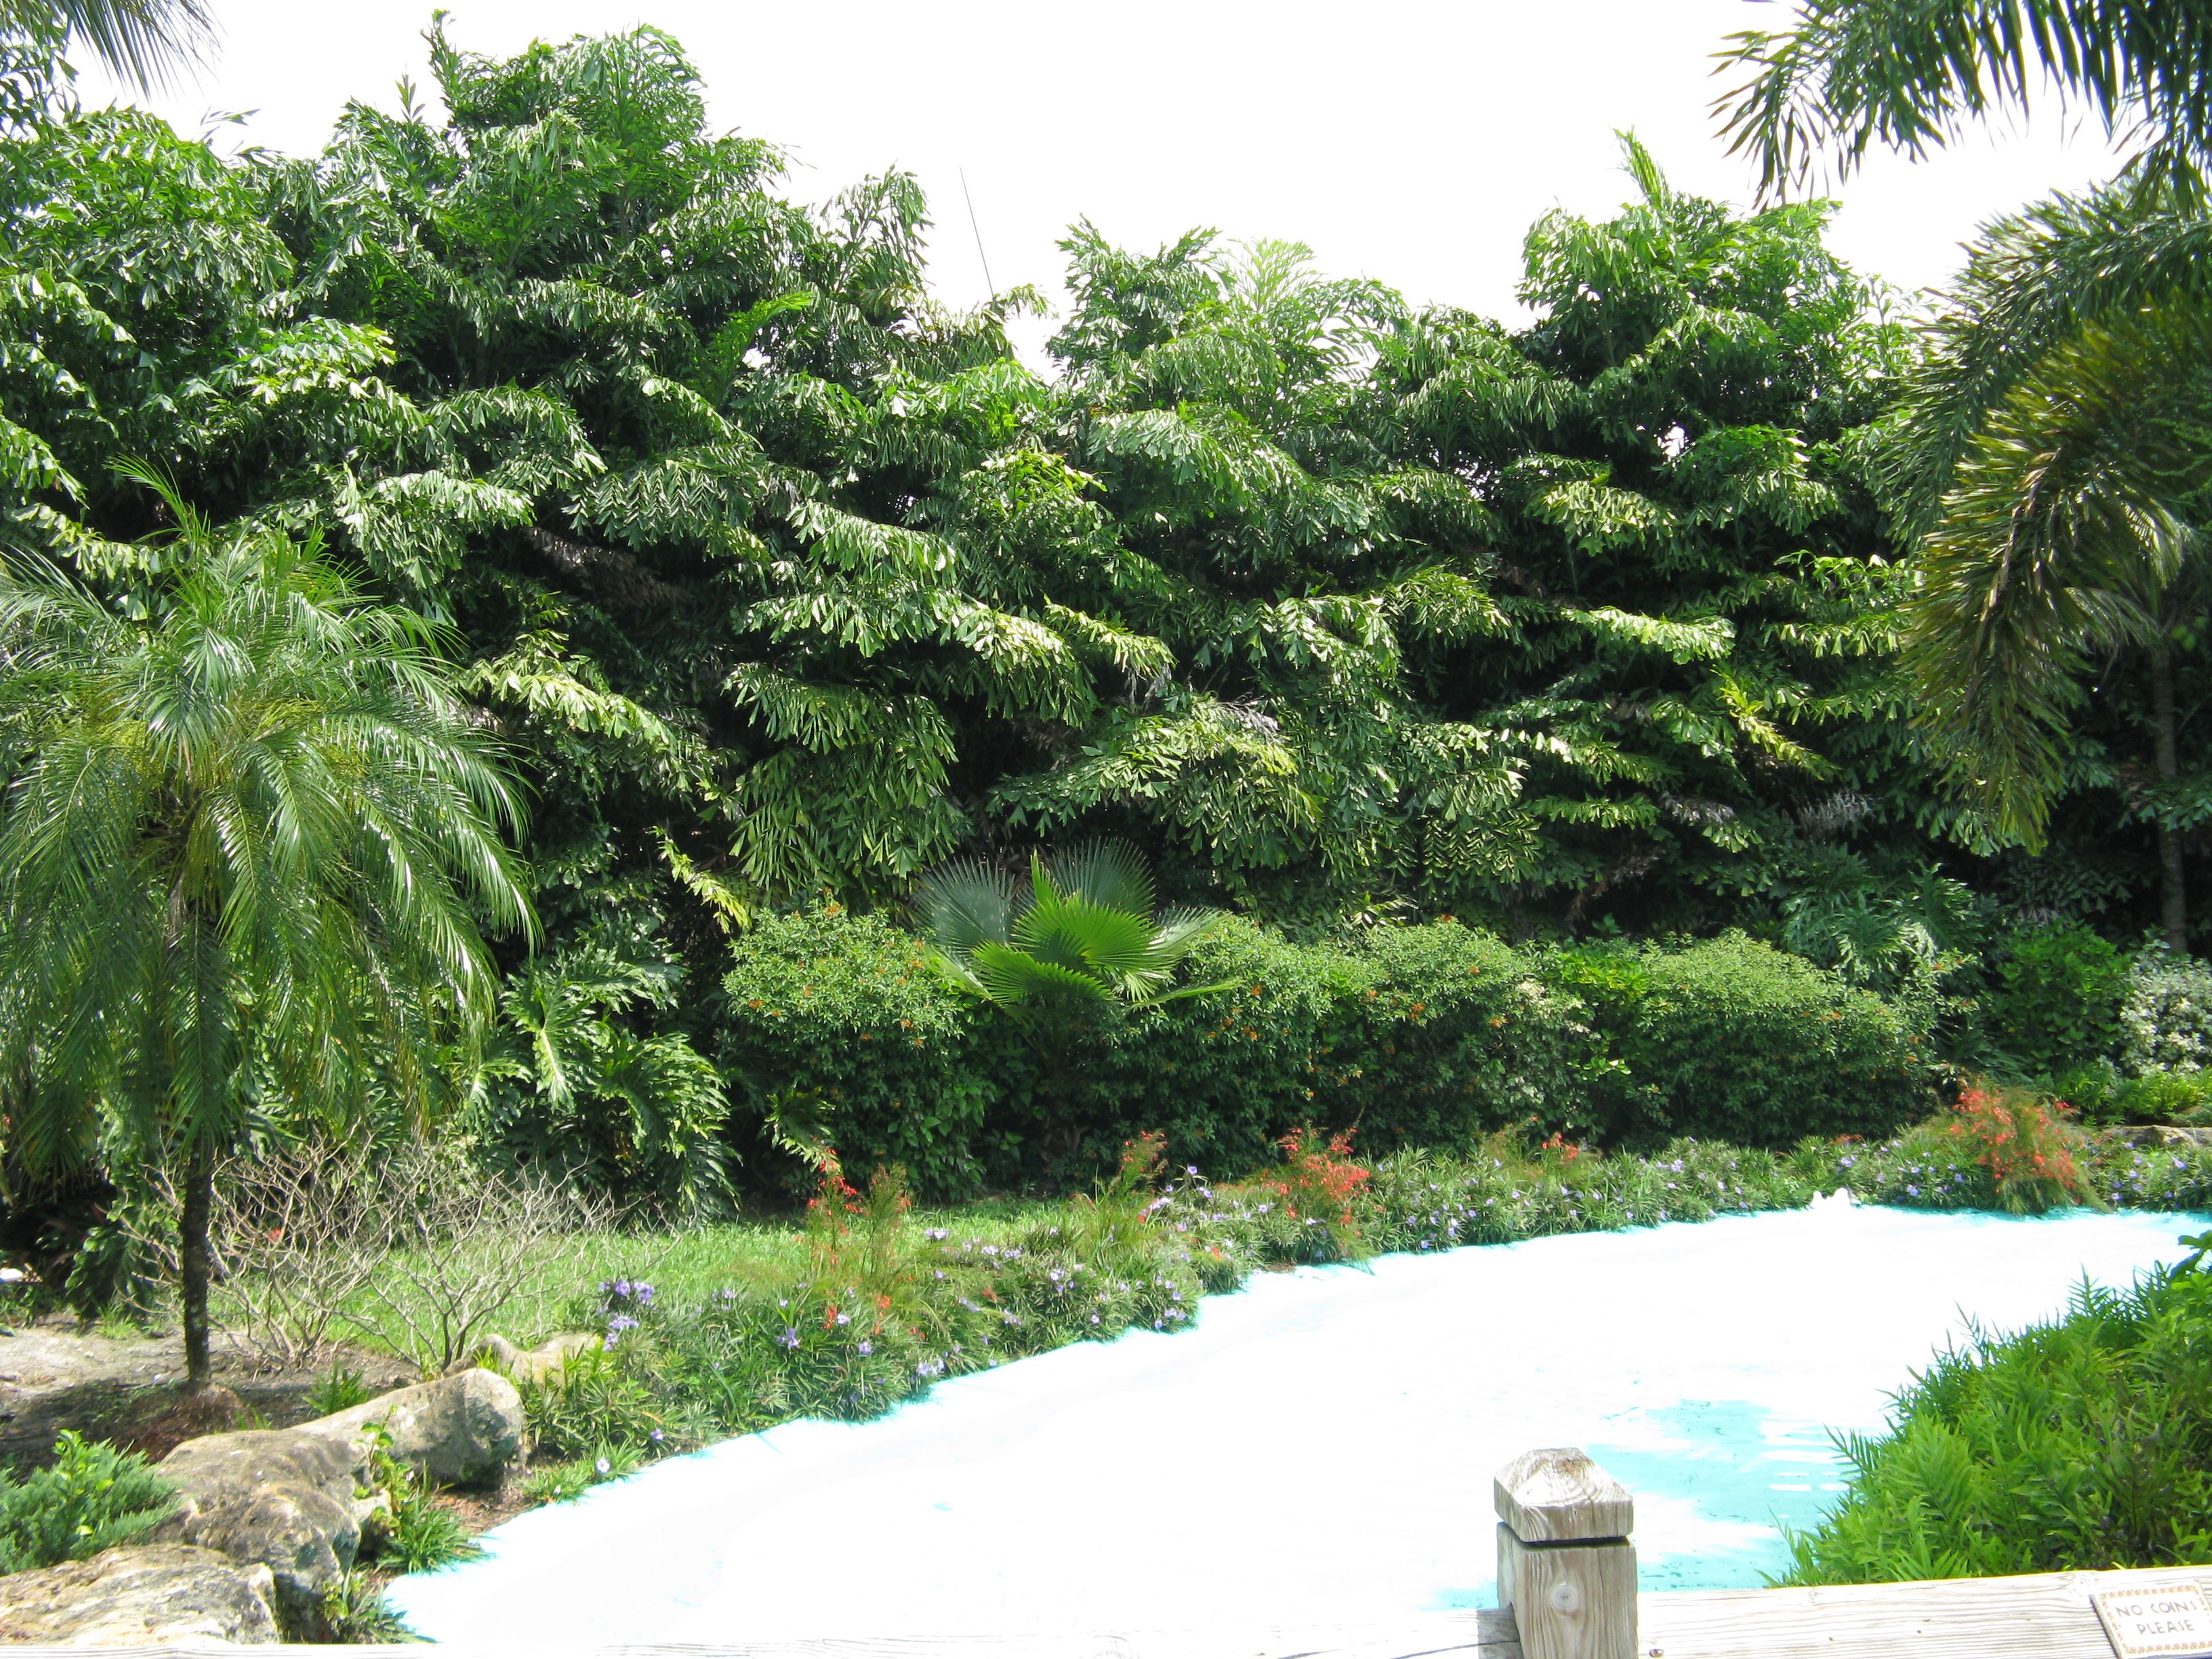 Fishtail Palms - planted as a screening backdrop. Hardy, resilient palm and  great for